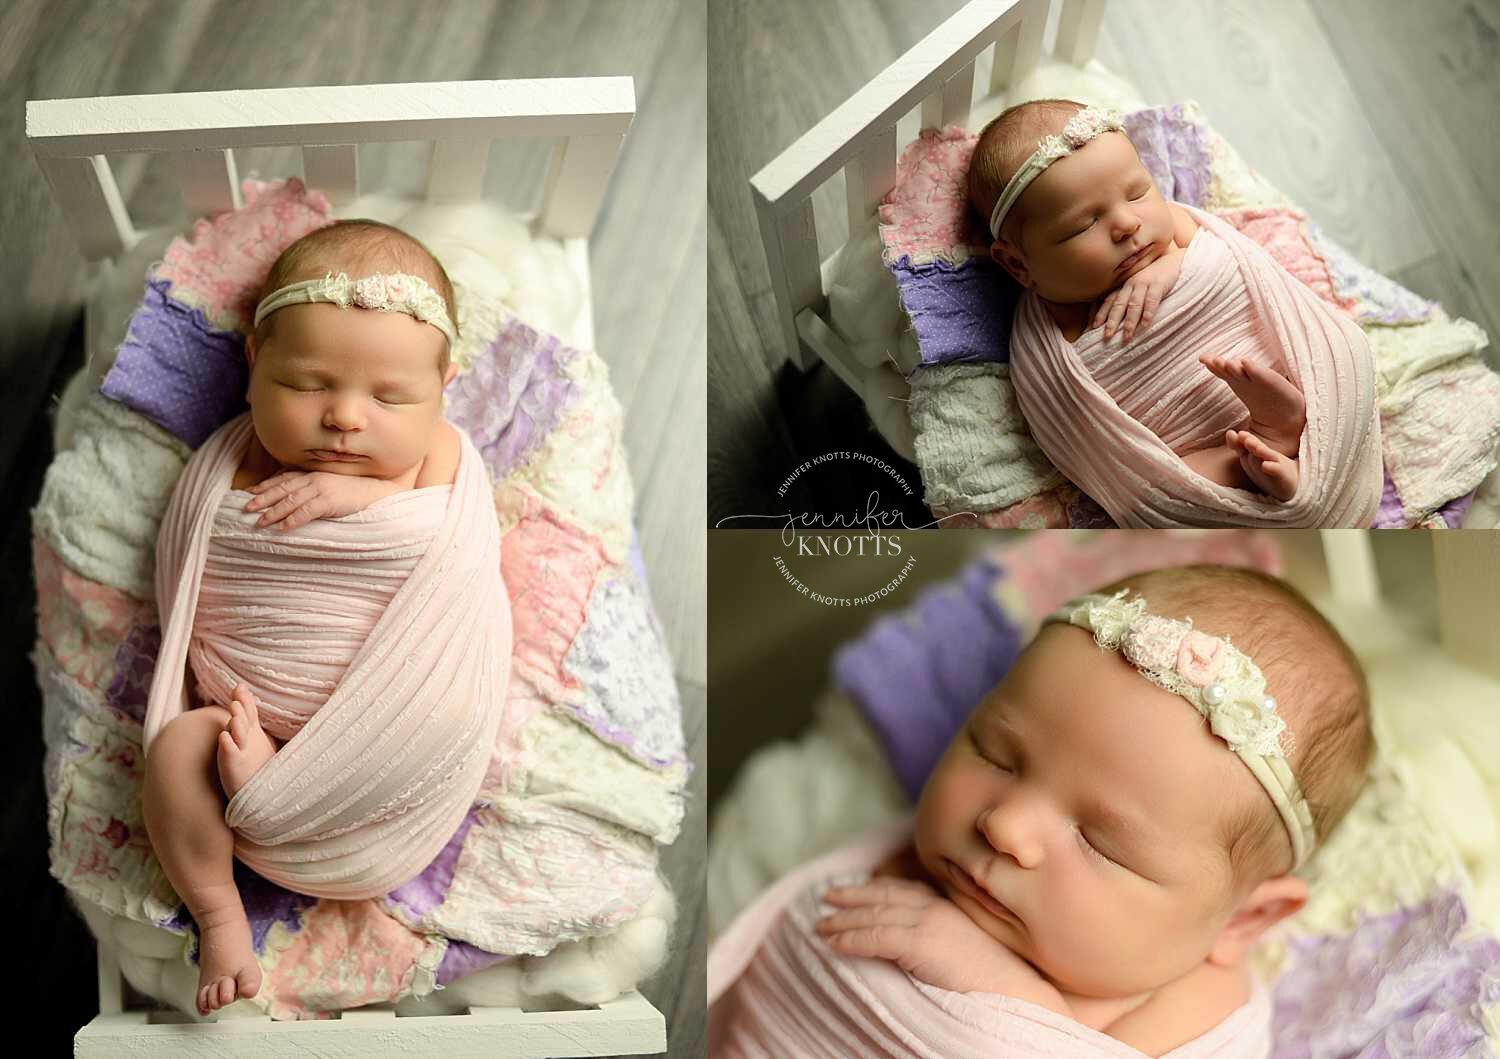 newborn baby girl posed on purple and pink quilt and wooden bed